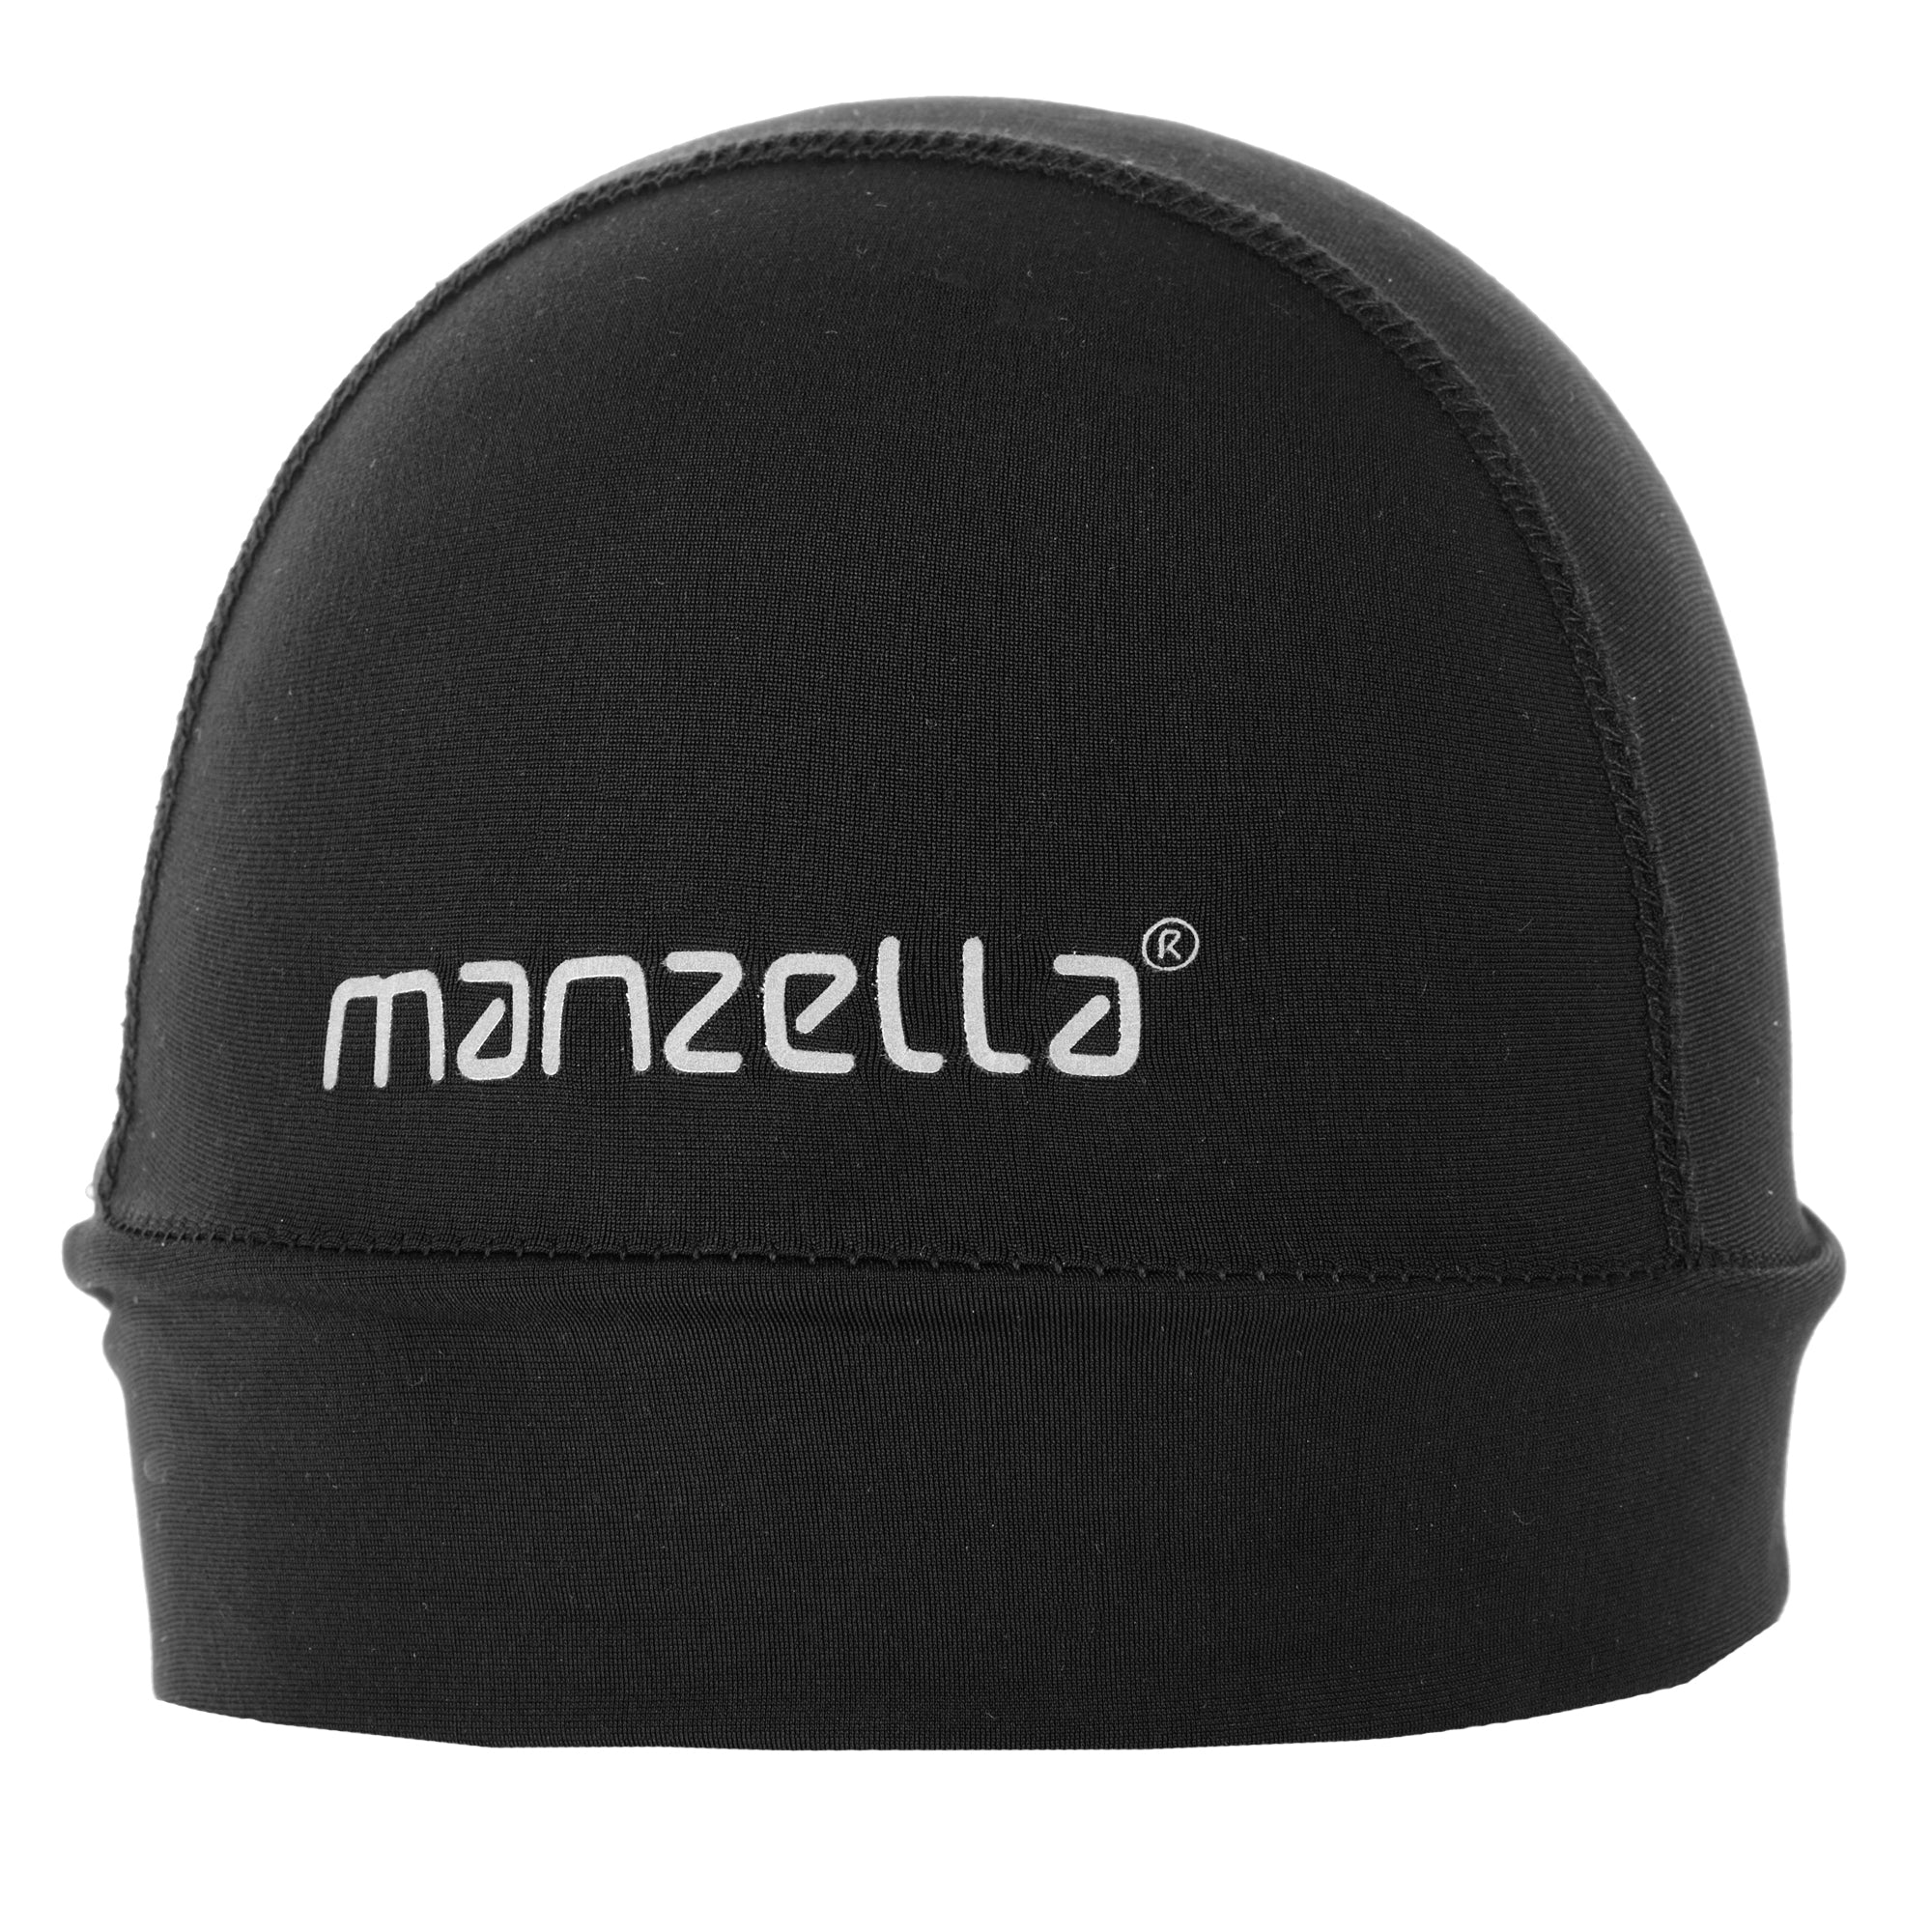 Manzella VAPOR Hat for Men